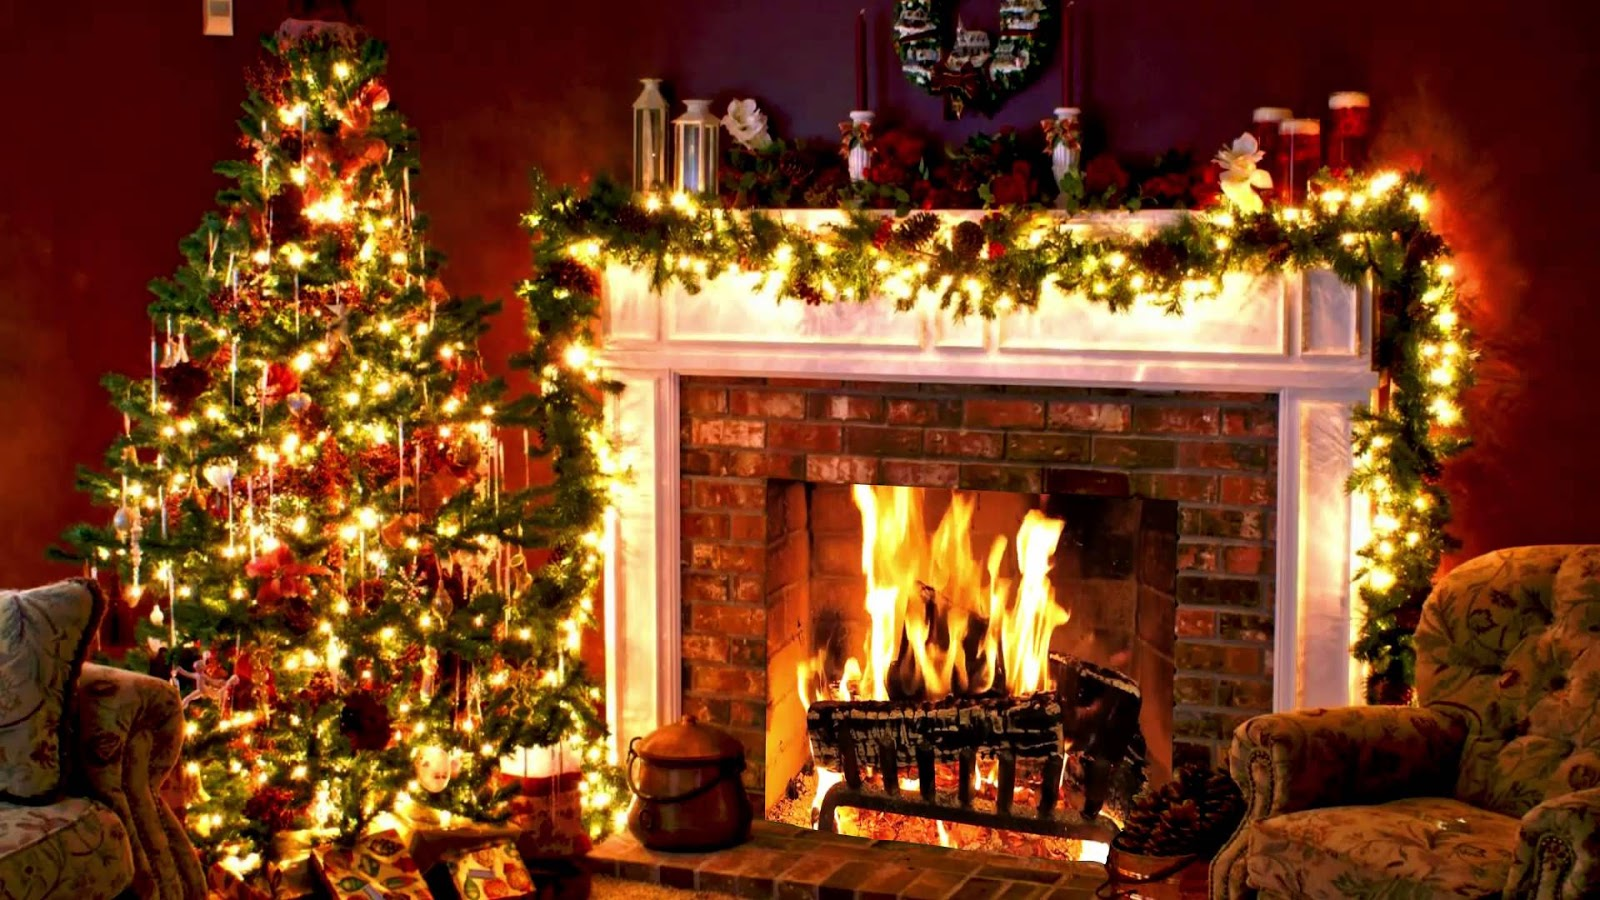 Christmas Fireplace Wallpaper Christmas Fireplace Drawing At Getdrawings Free For Personal